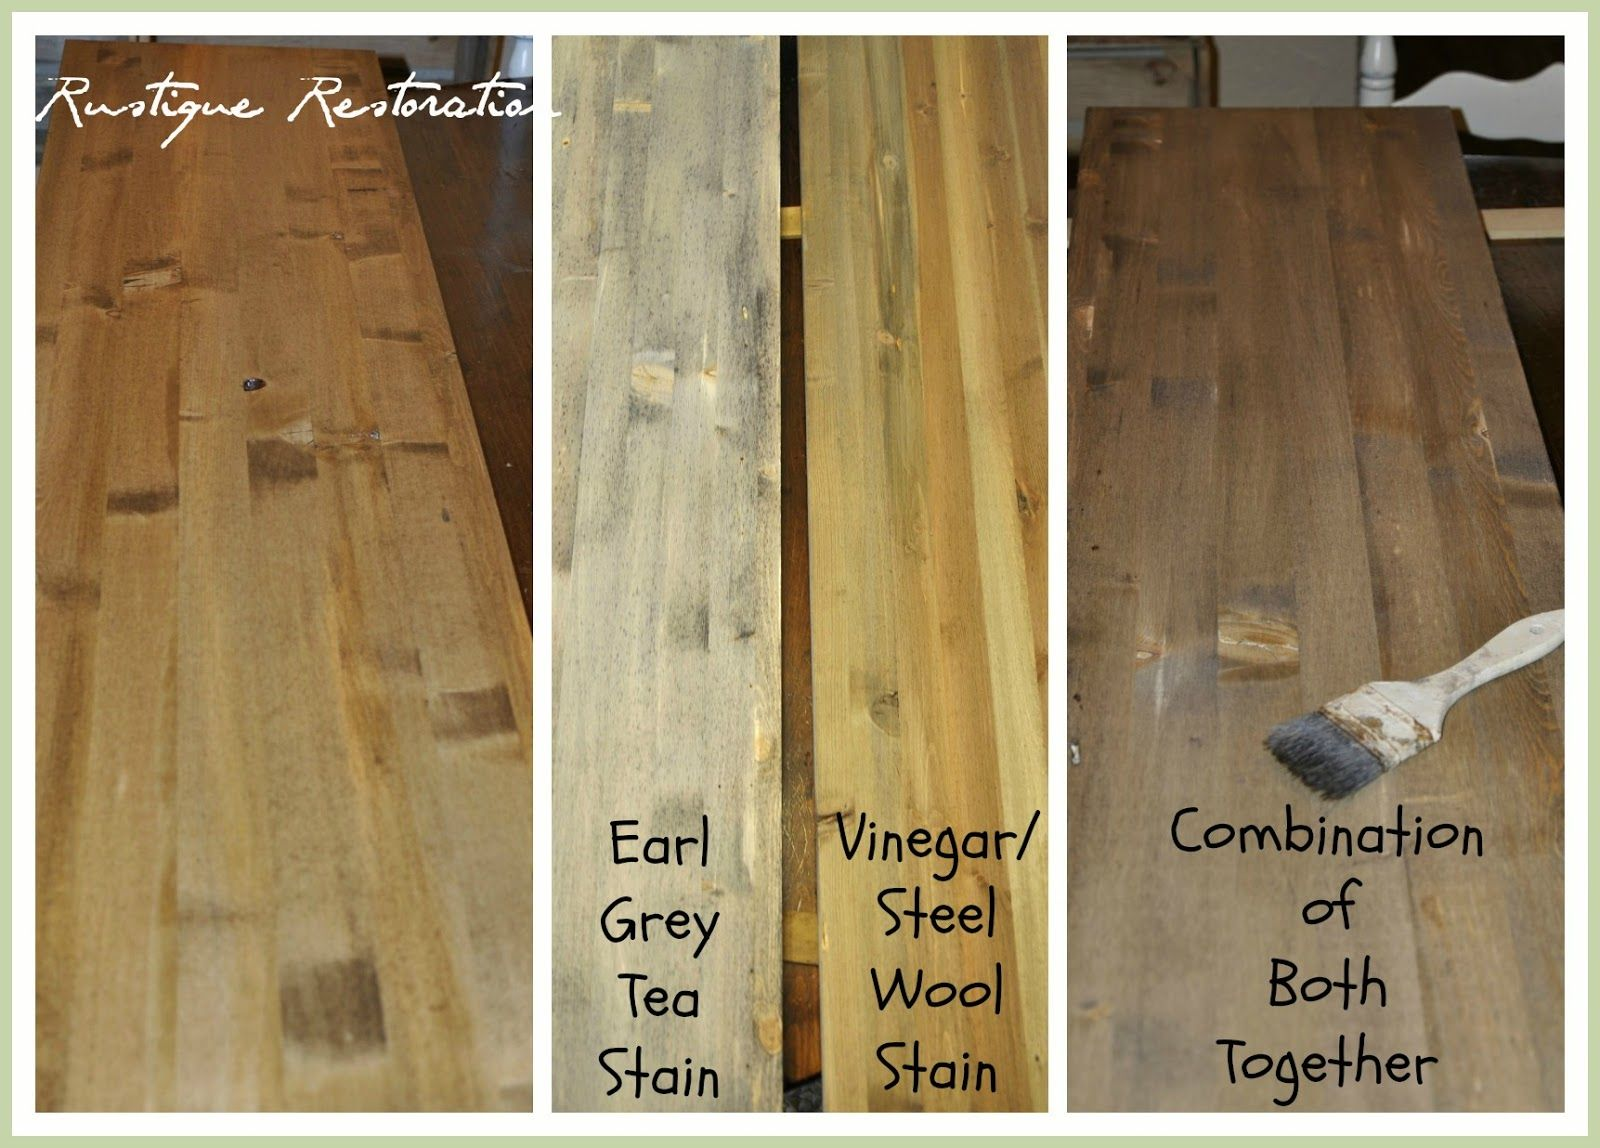 Rustique Restoration Homemade Wood Stains Diy Wood Stain Staining Wood